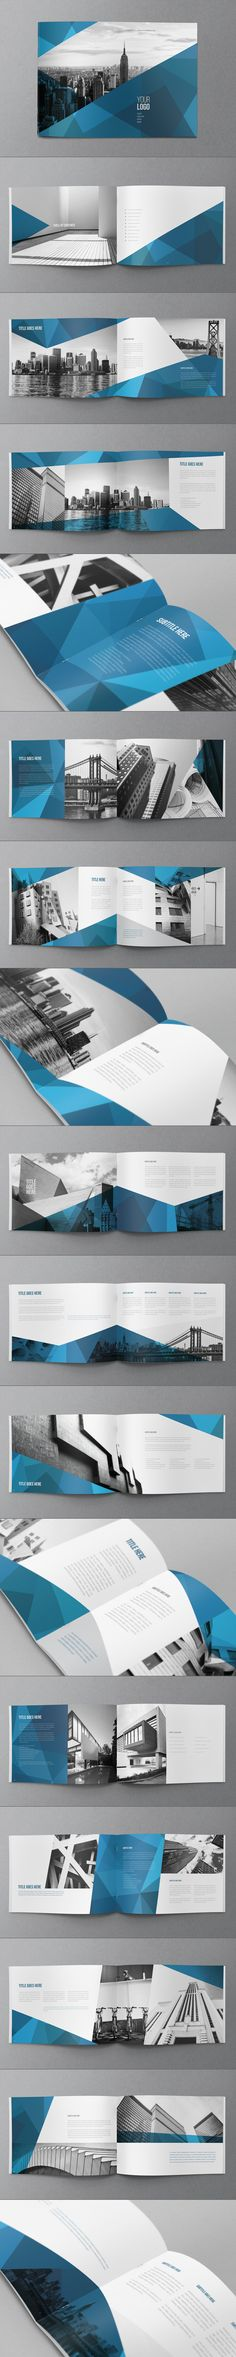 Abstract Architecture Brochure by Abra Design, via Behance // identity, branding, graphic Graphisches Design, Buch Design, Layout Design, Print Design, Design Elements, Modern Design, Brochure Design Inspiration, Layout Inspiration, Corporate Design